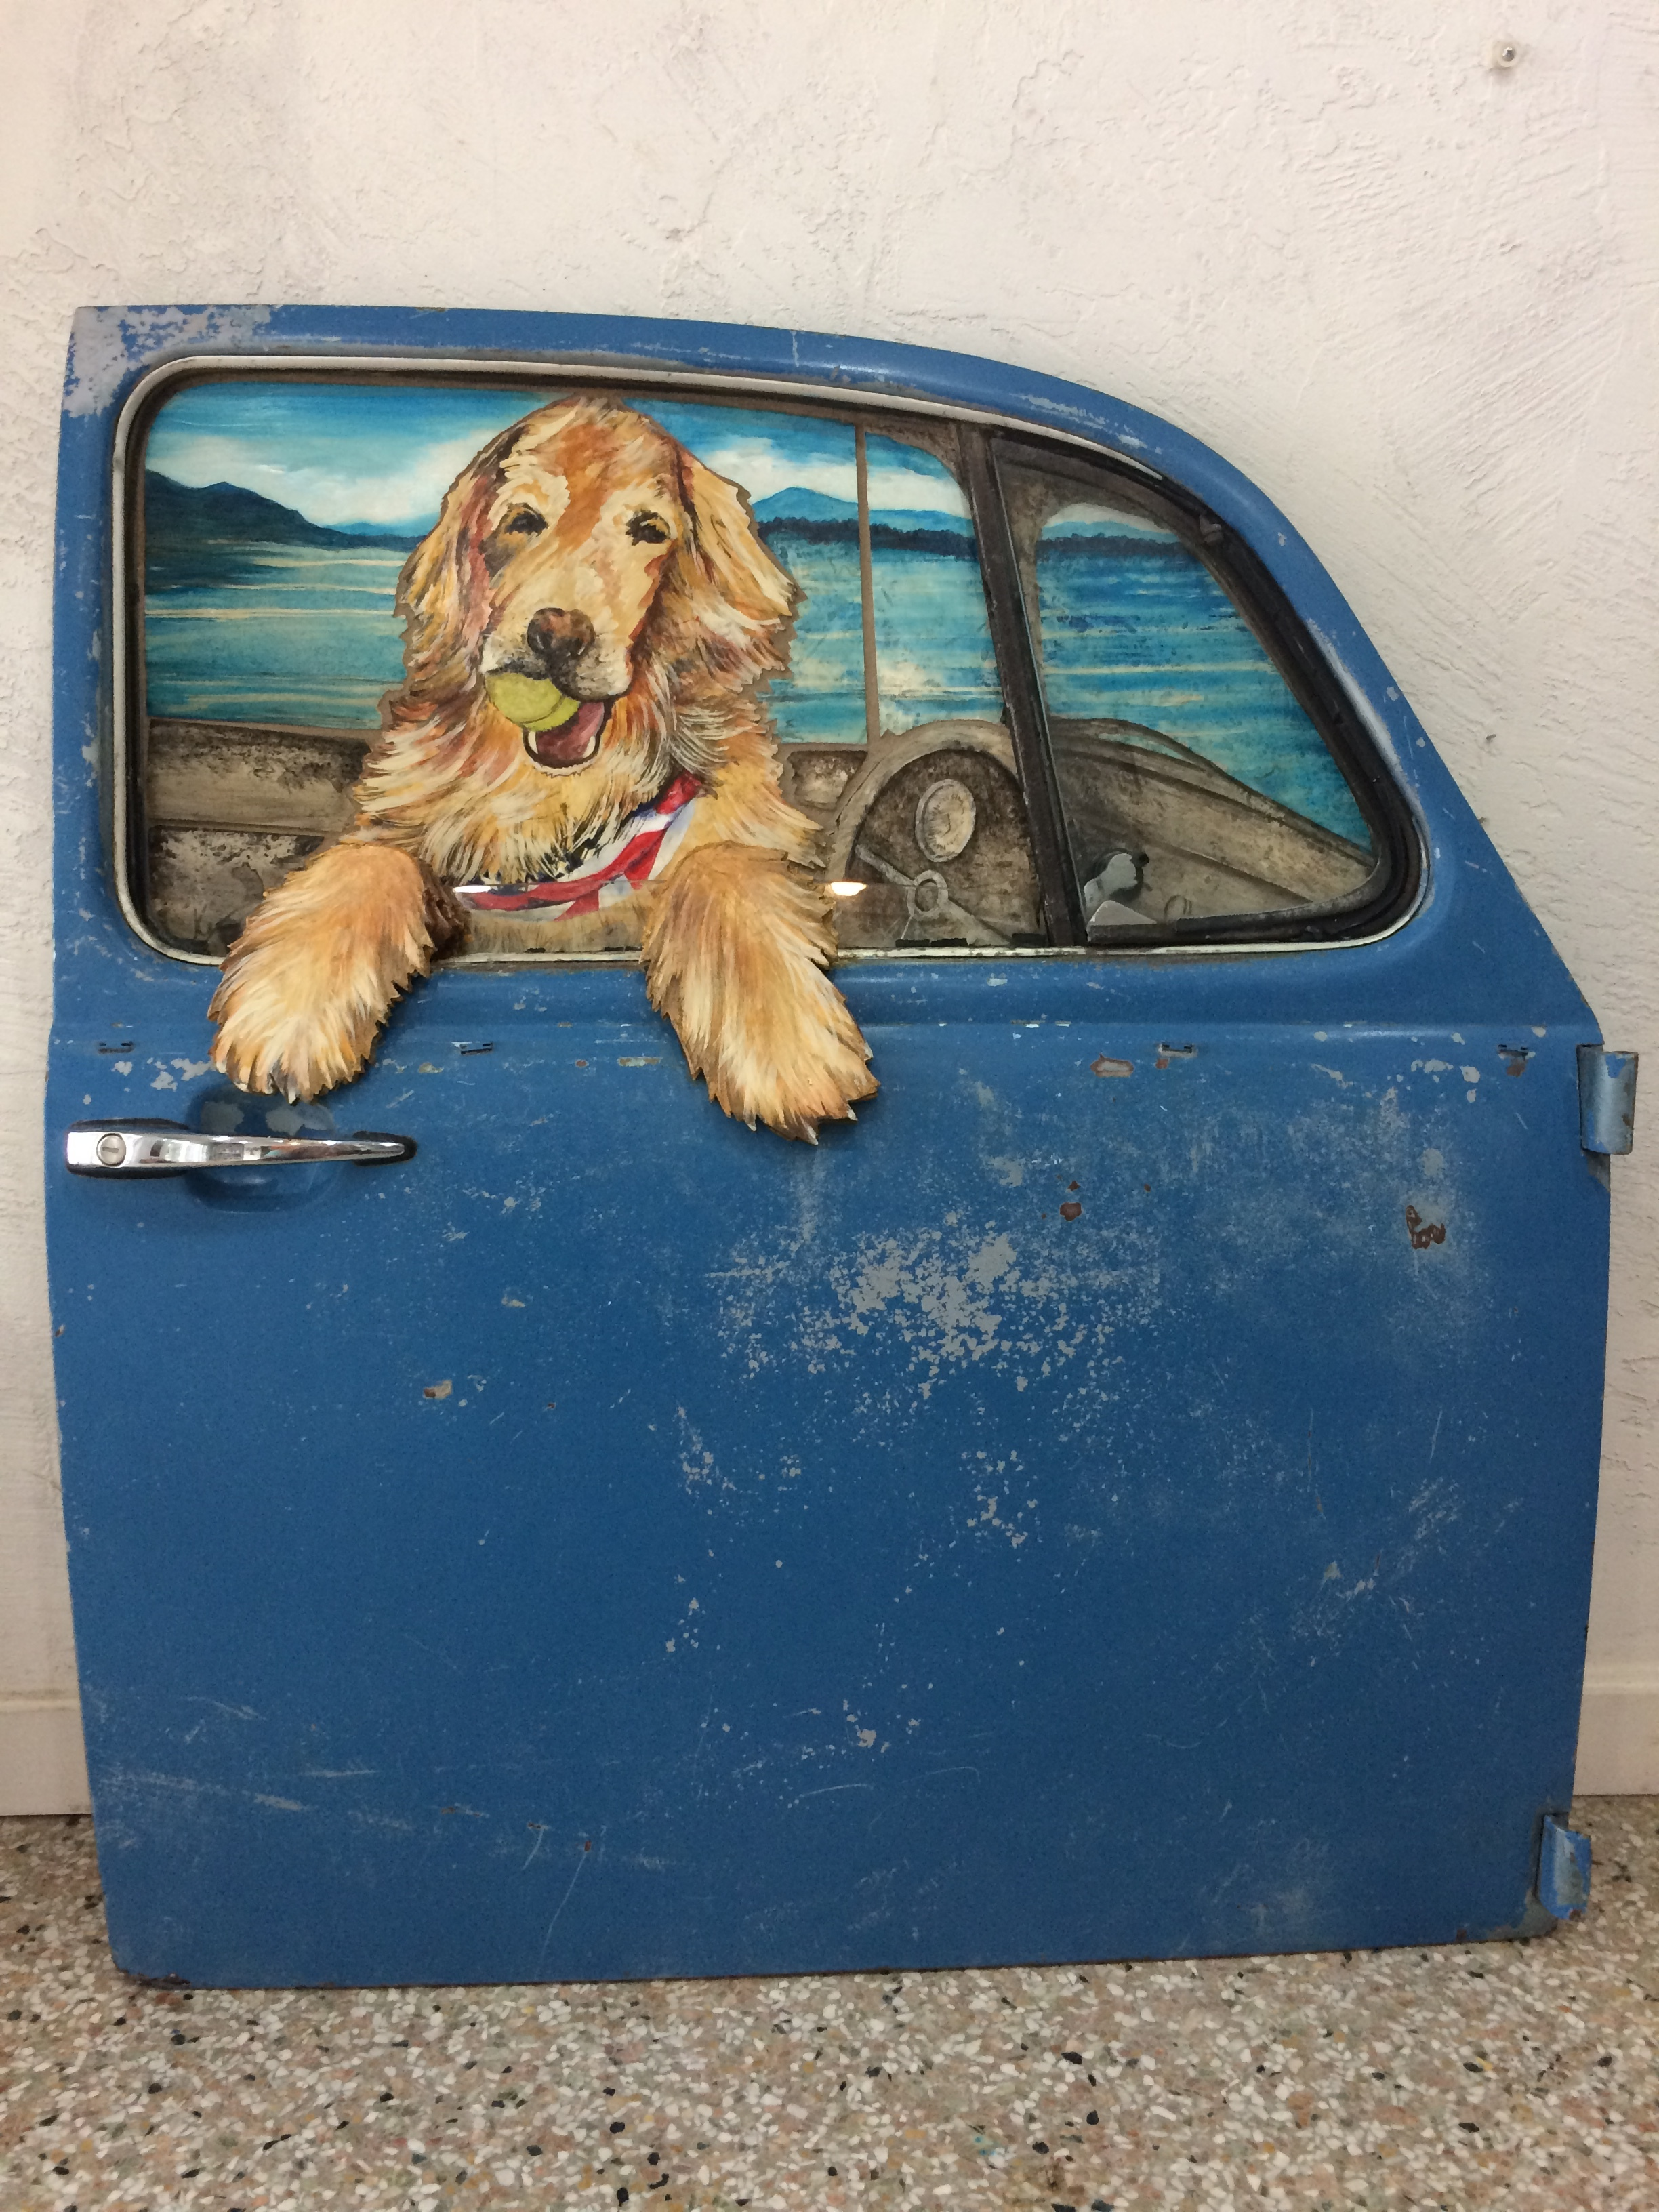 Reagan, golden retriever in vintage VW 1970's door, SOLD